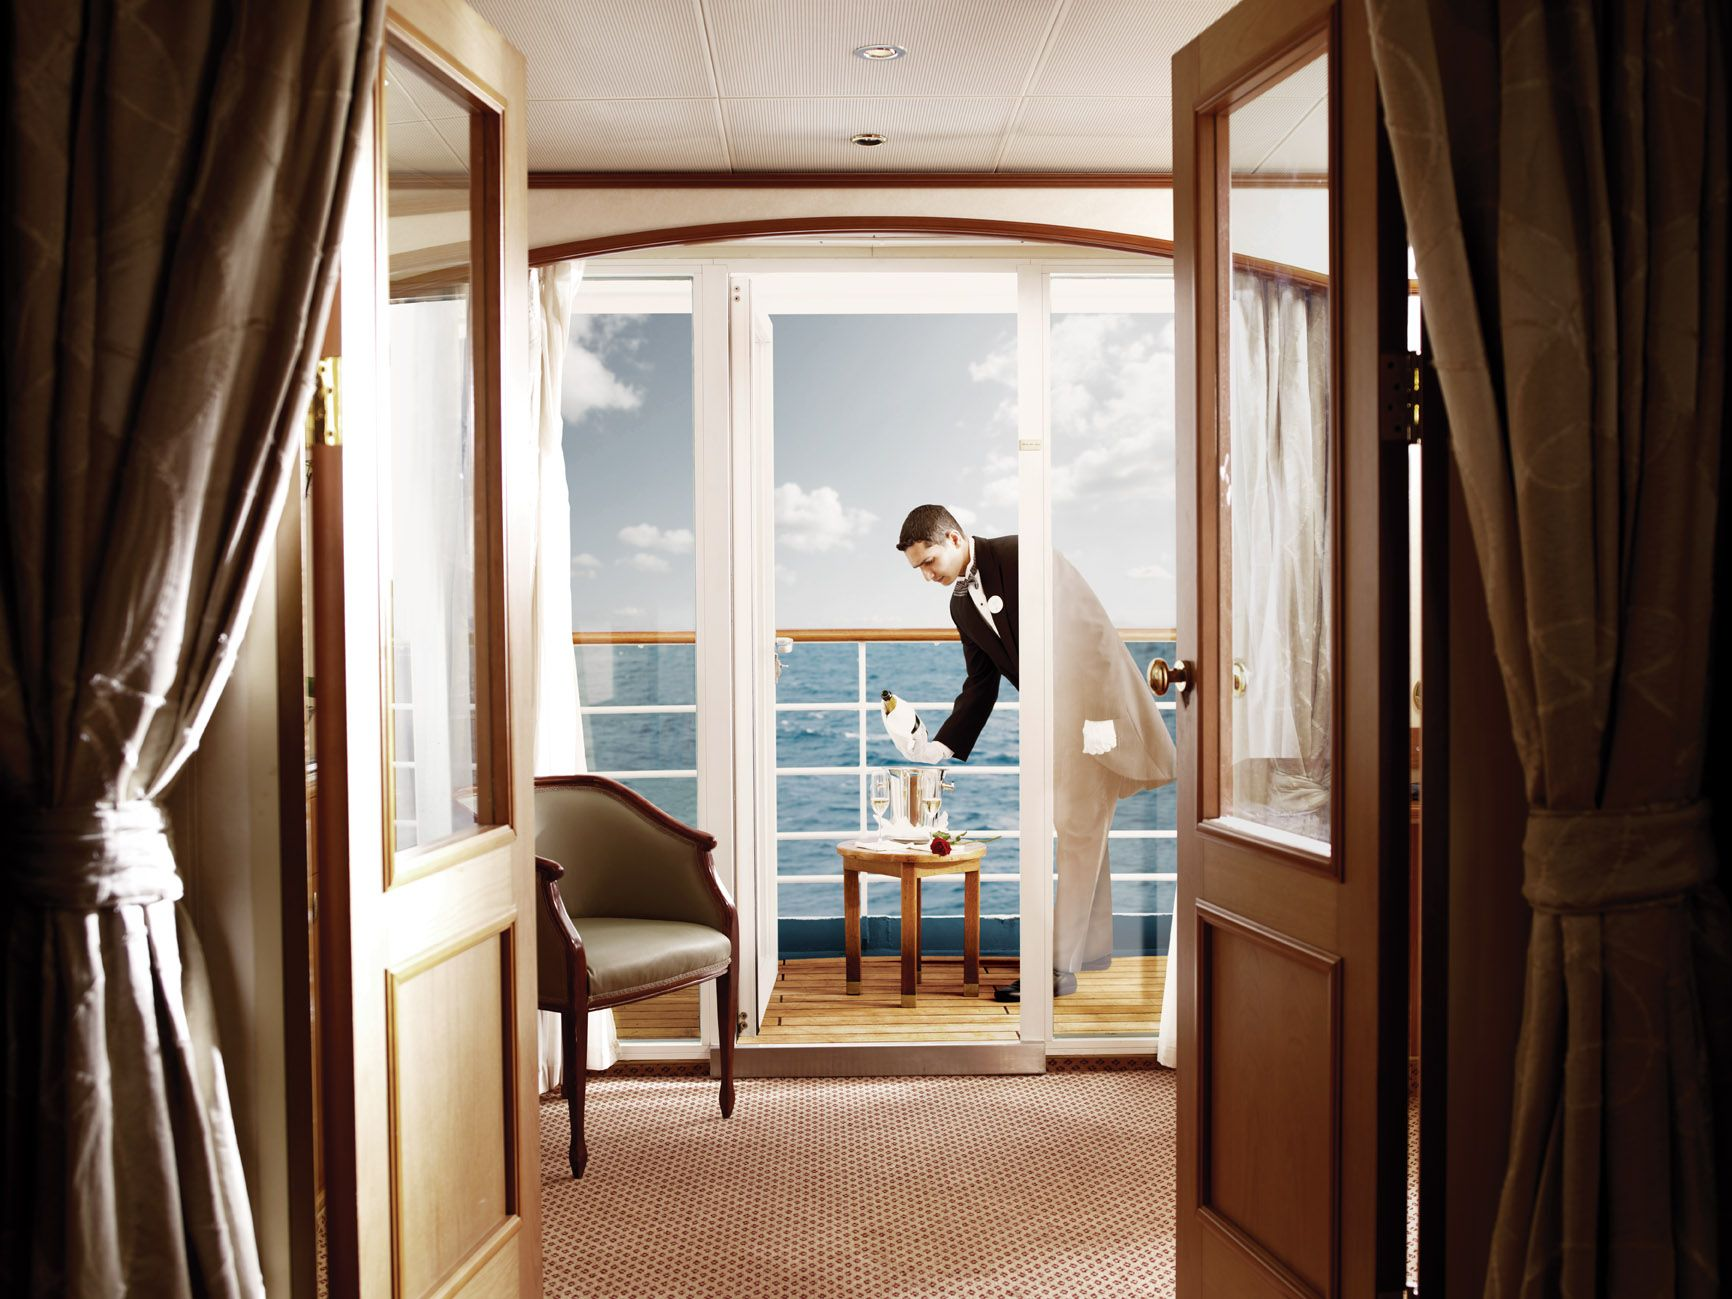 Pamper yourself with a silversea allinclusive luxury